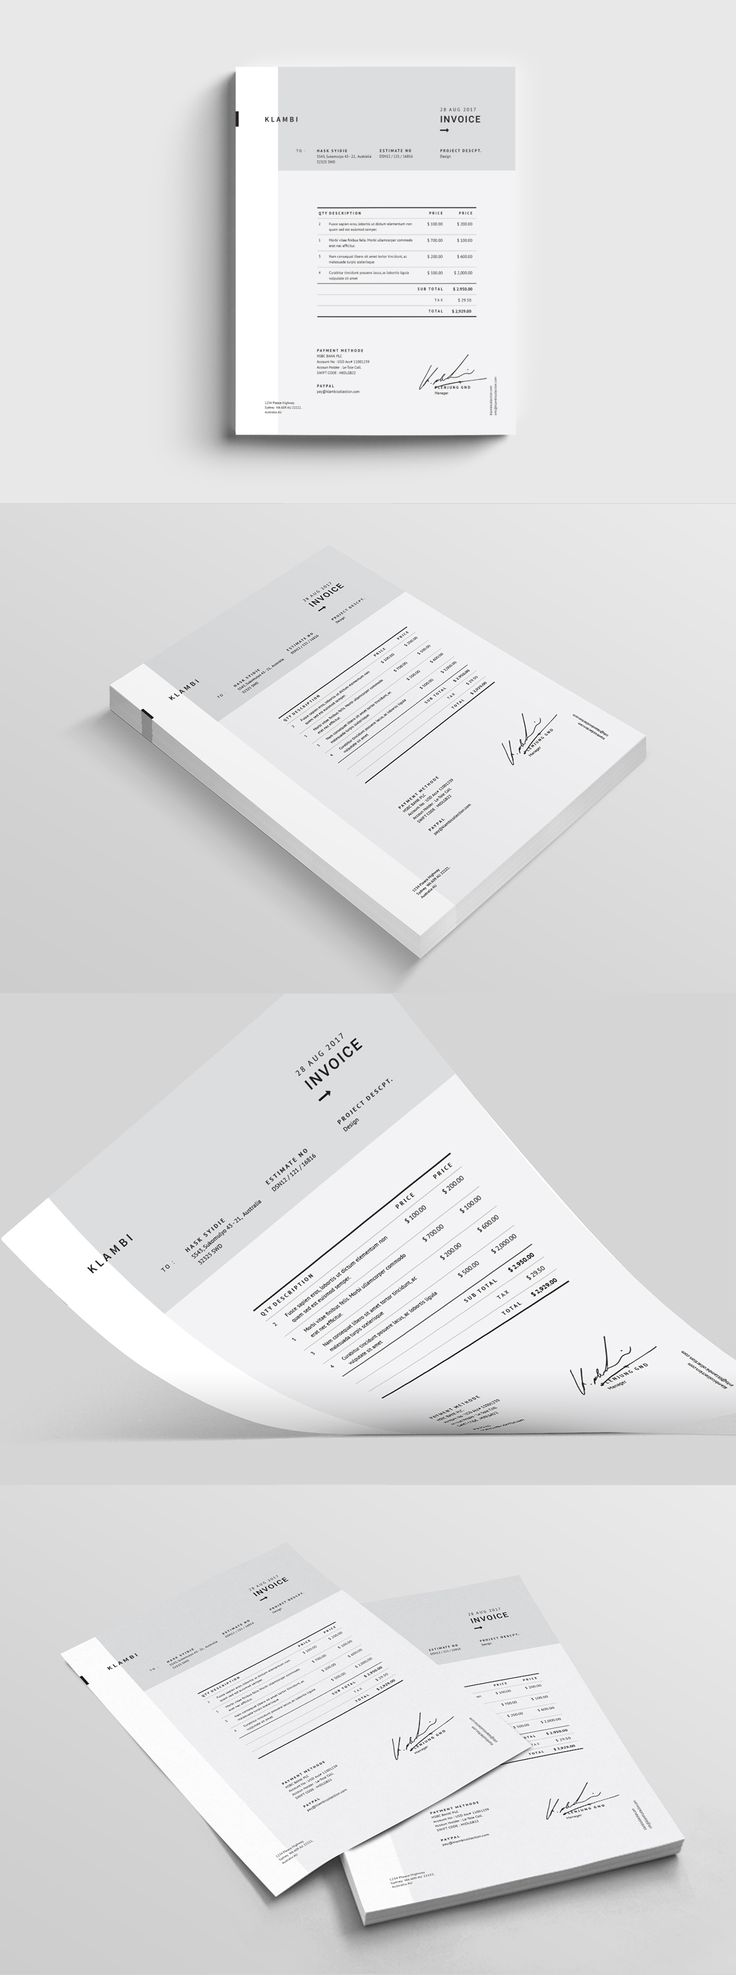 328 best Documents design ideas images on Pinterest | Resume design ...